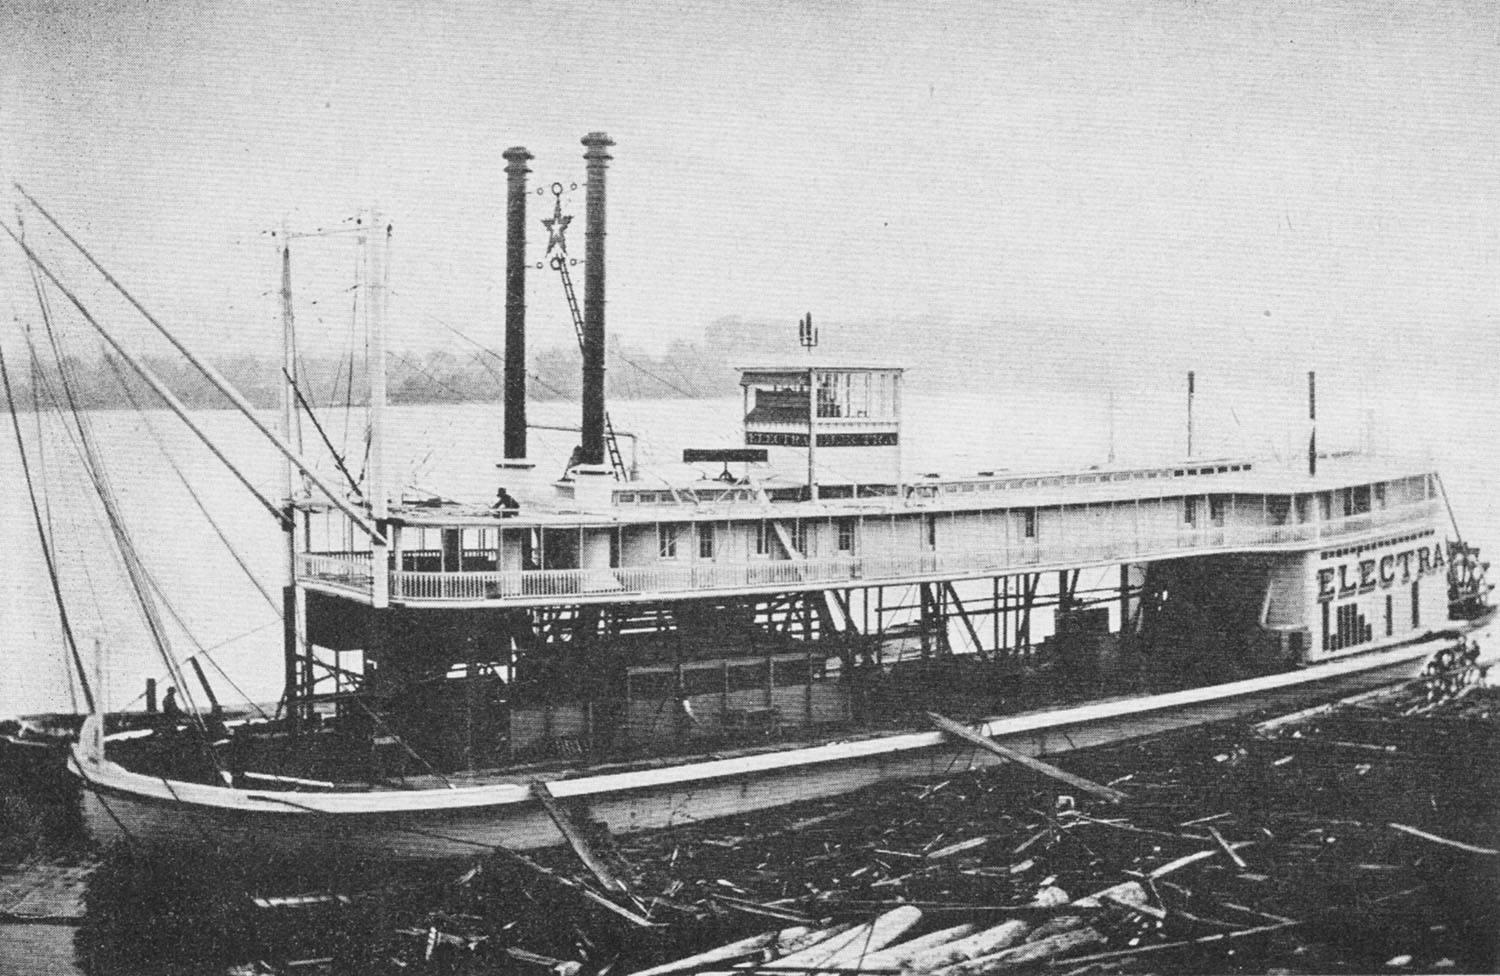 The Electra as a new boat at the Howard Shipyard, Jeffersonville, Ind., 1897. (Howard Steamboat Museum collection)